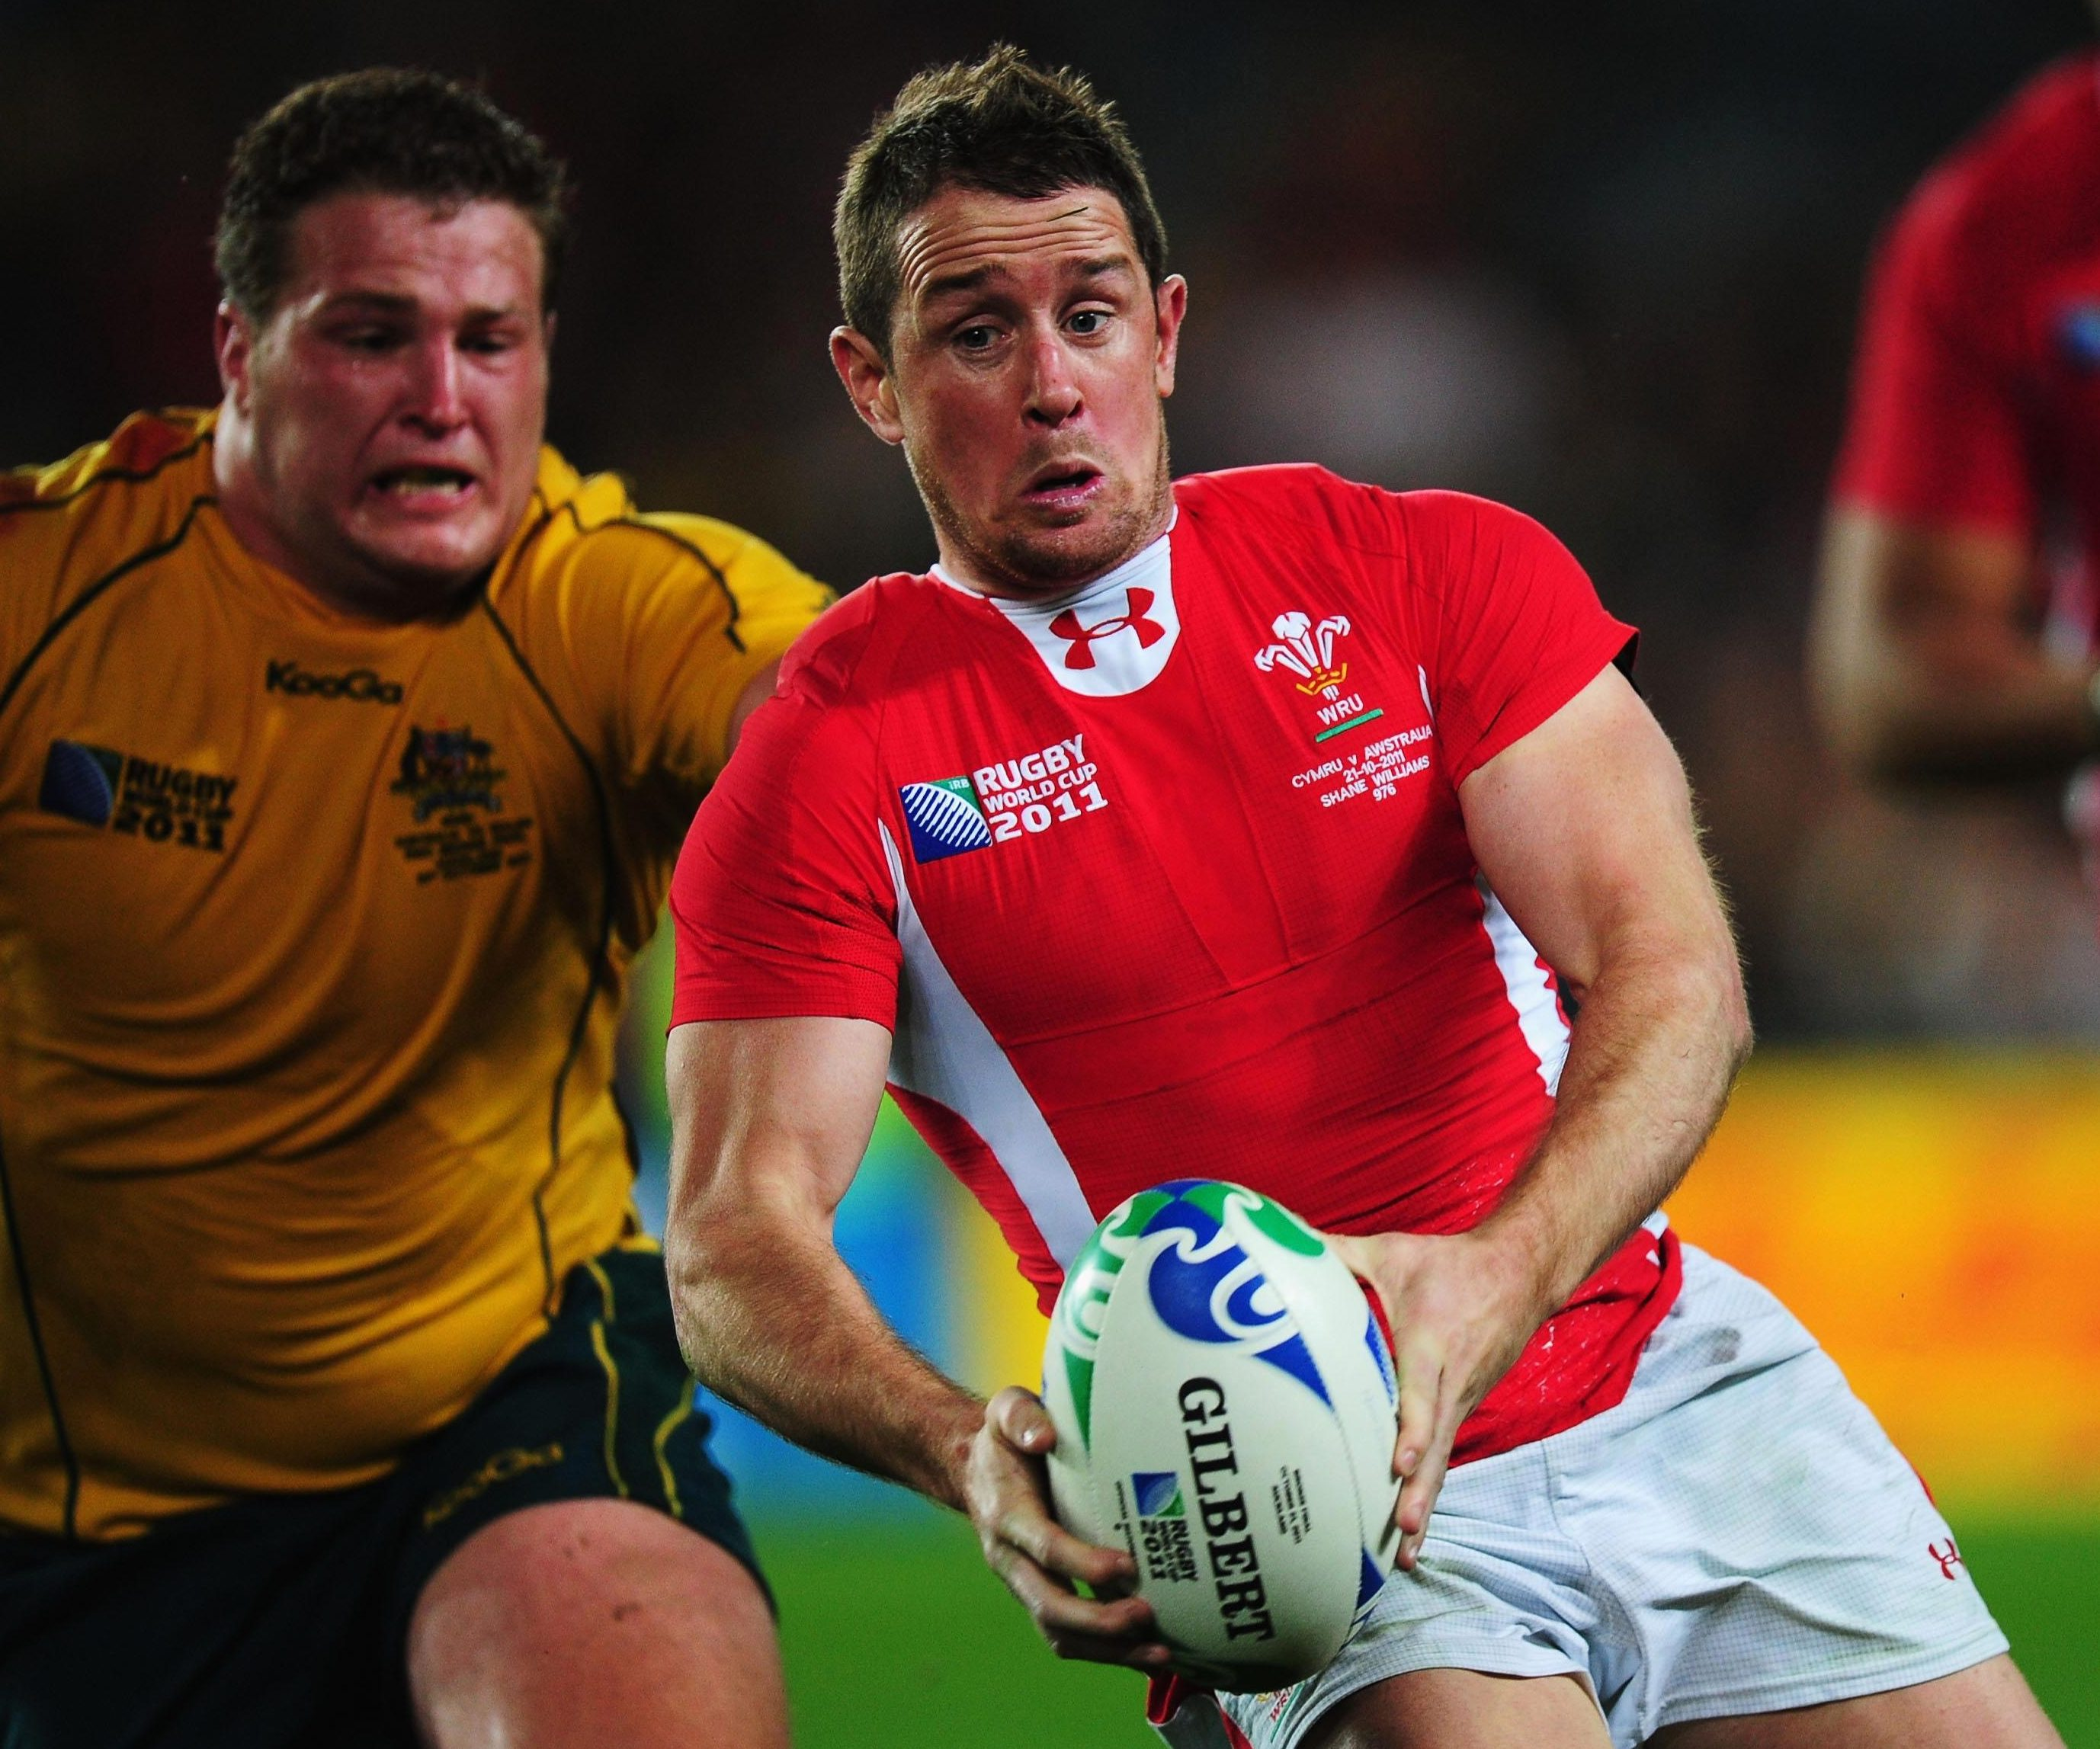 Shane Williams was named World Rugby Player of the Year in 2008 and scored 290 points in 87 games for Wales